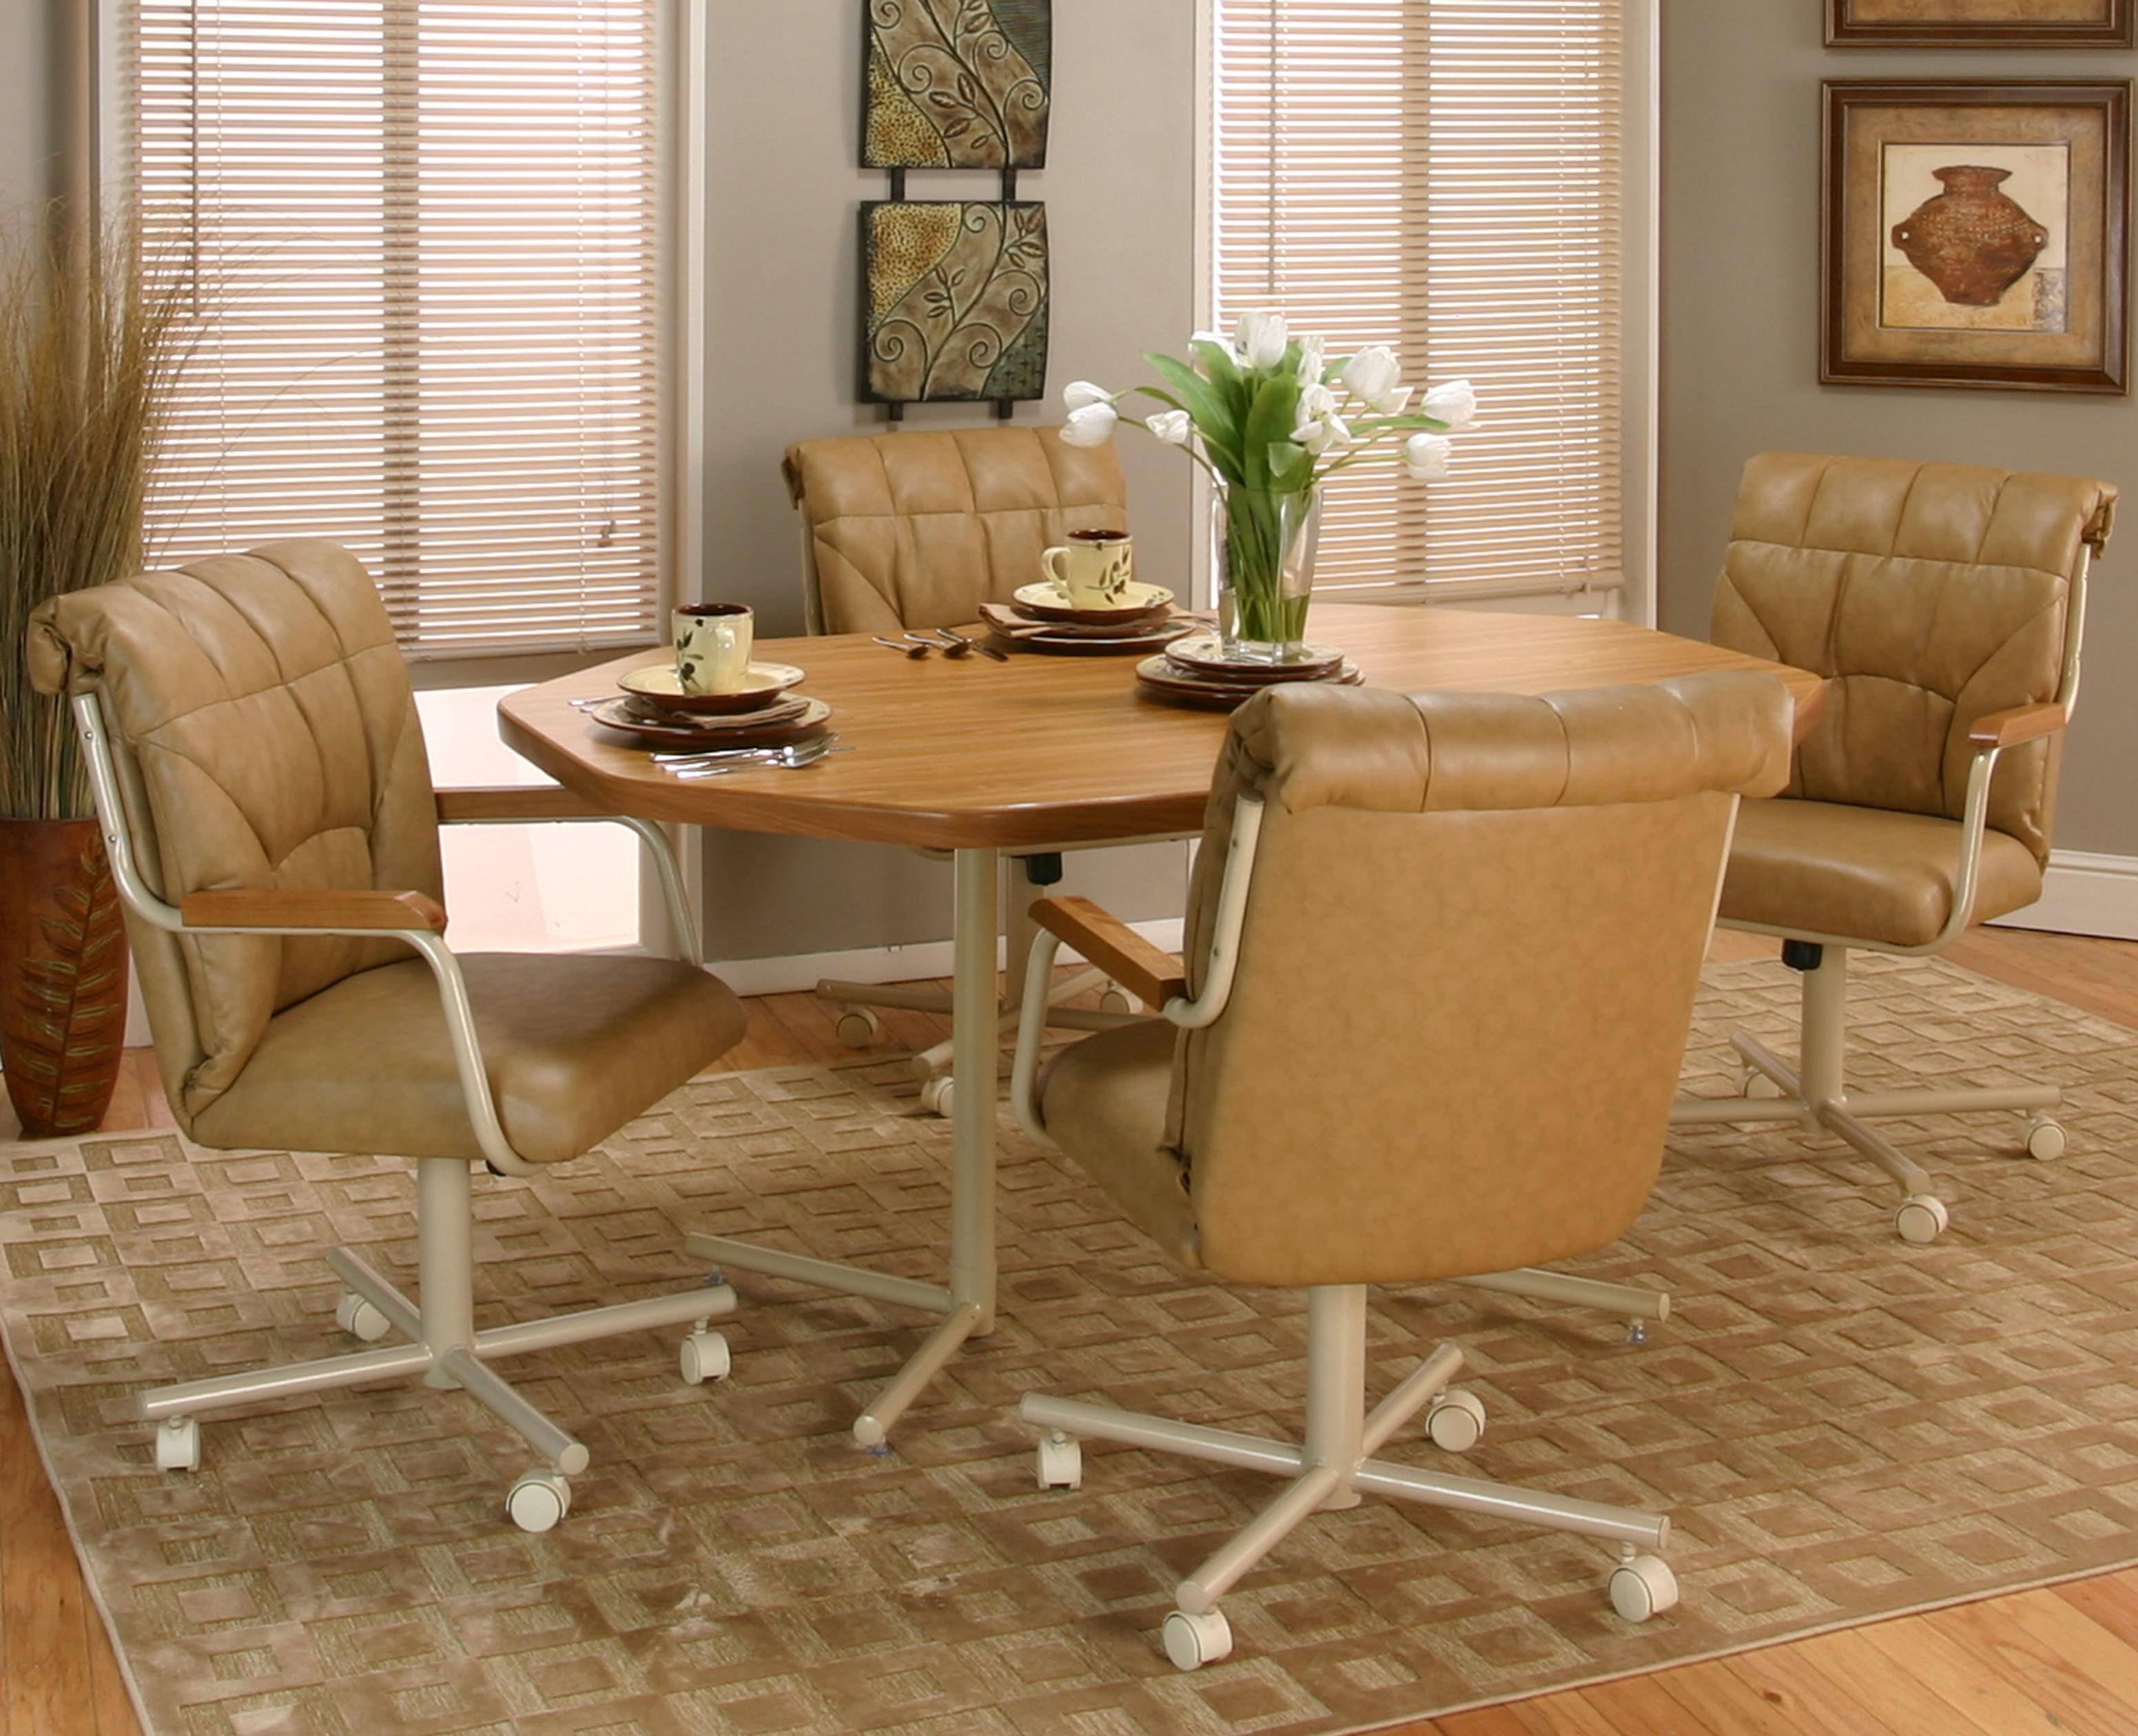 Swivel Chairs For Kitchen Kitchen Dinette Sets Swivel Chairs